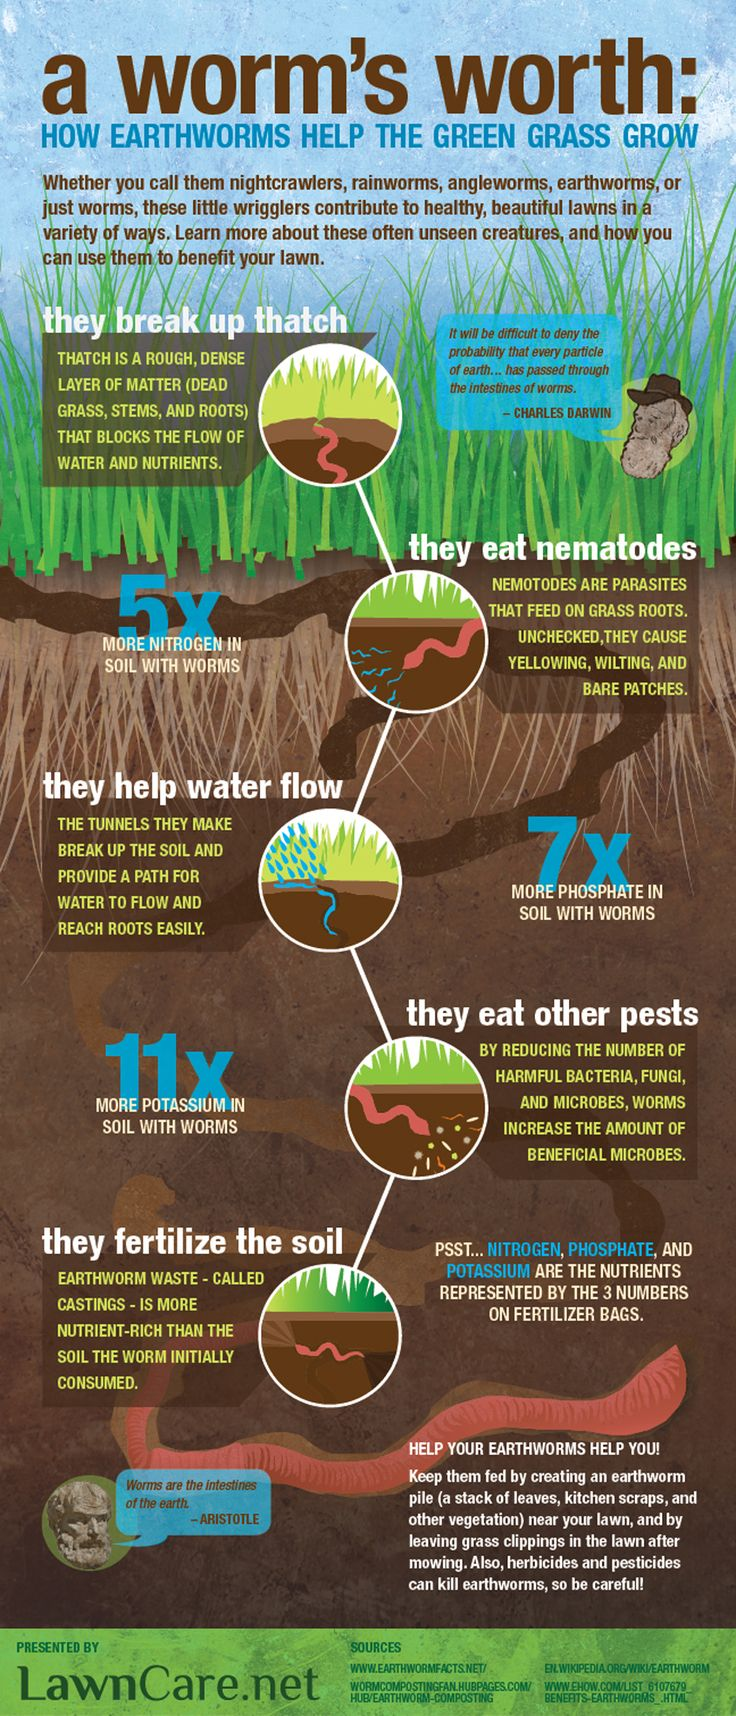 Check out Vermicomposting | Fertilize With Worm Castings at http://pioneersettler.com/vermicomposting-fertilize-with-worm-castings/